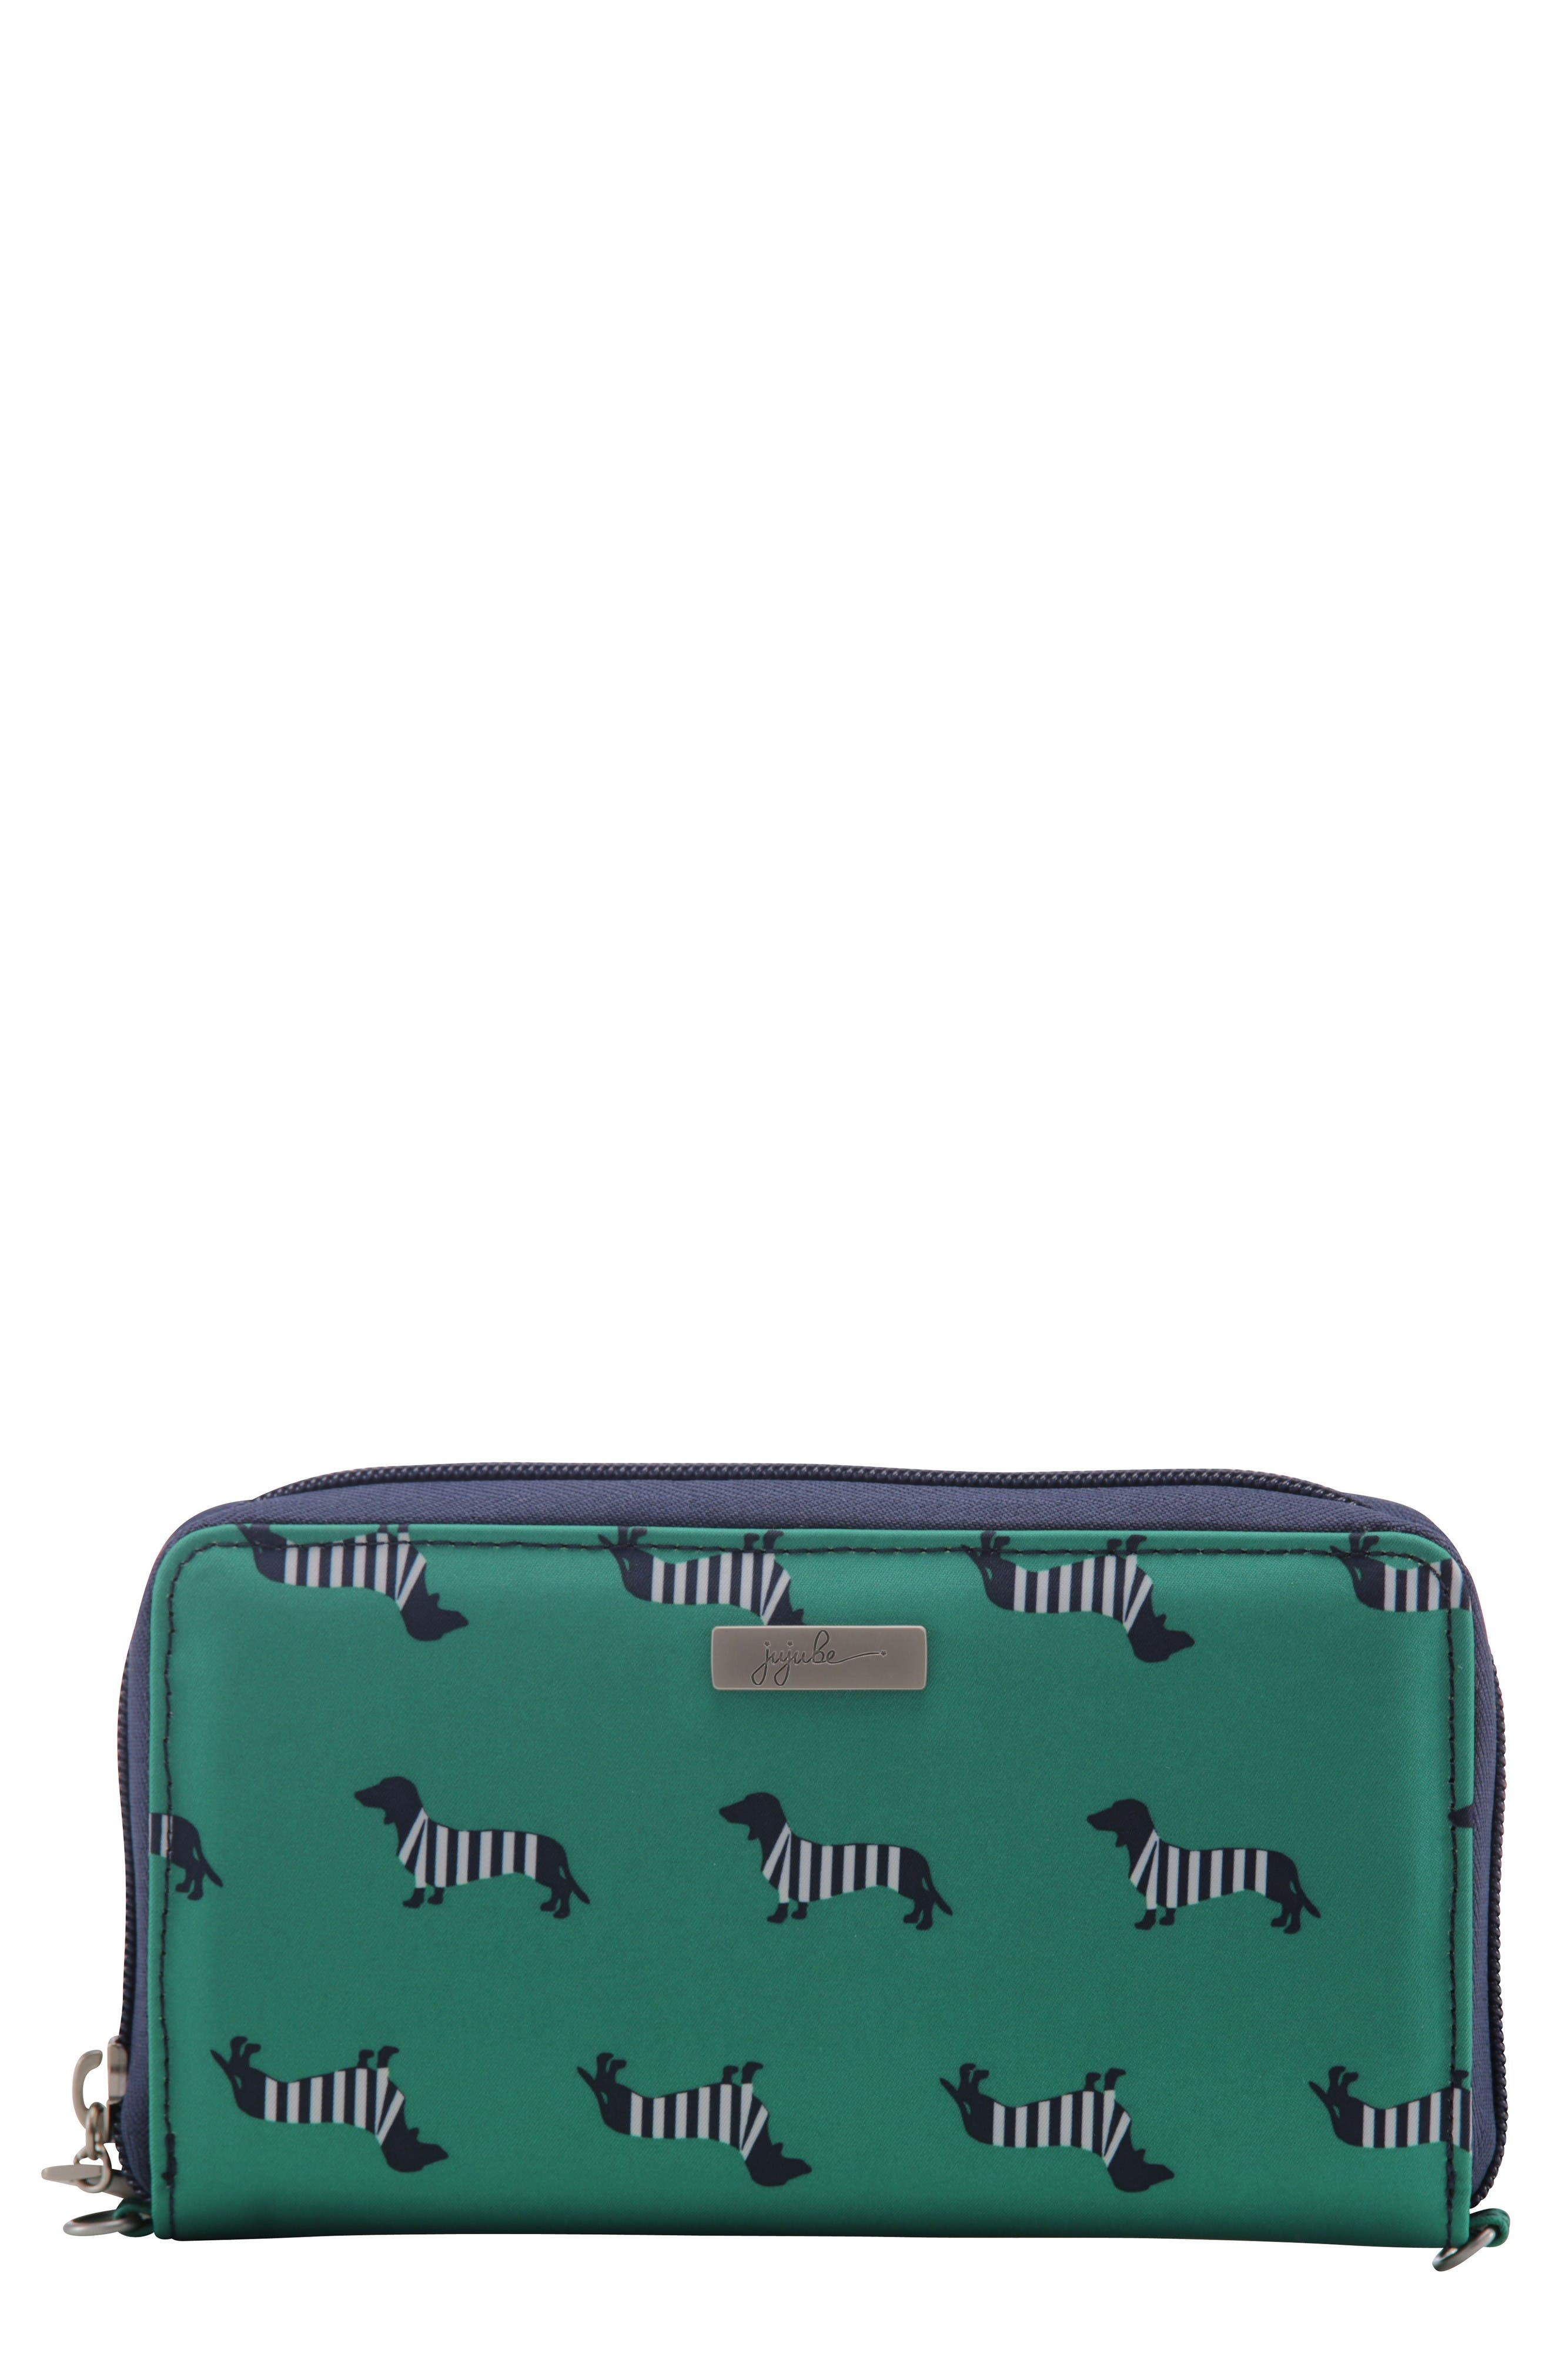 Be Spendy - Coastal Collection Clutch Wallet,                             Main thumbnail 1, color,                             Coney Island